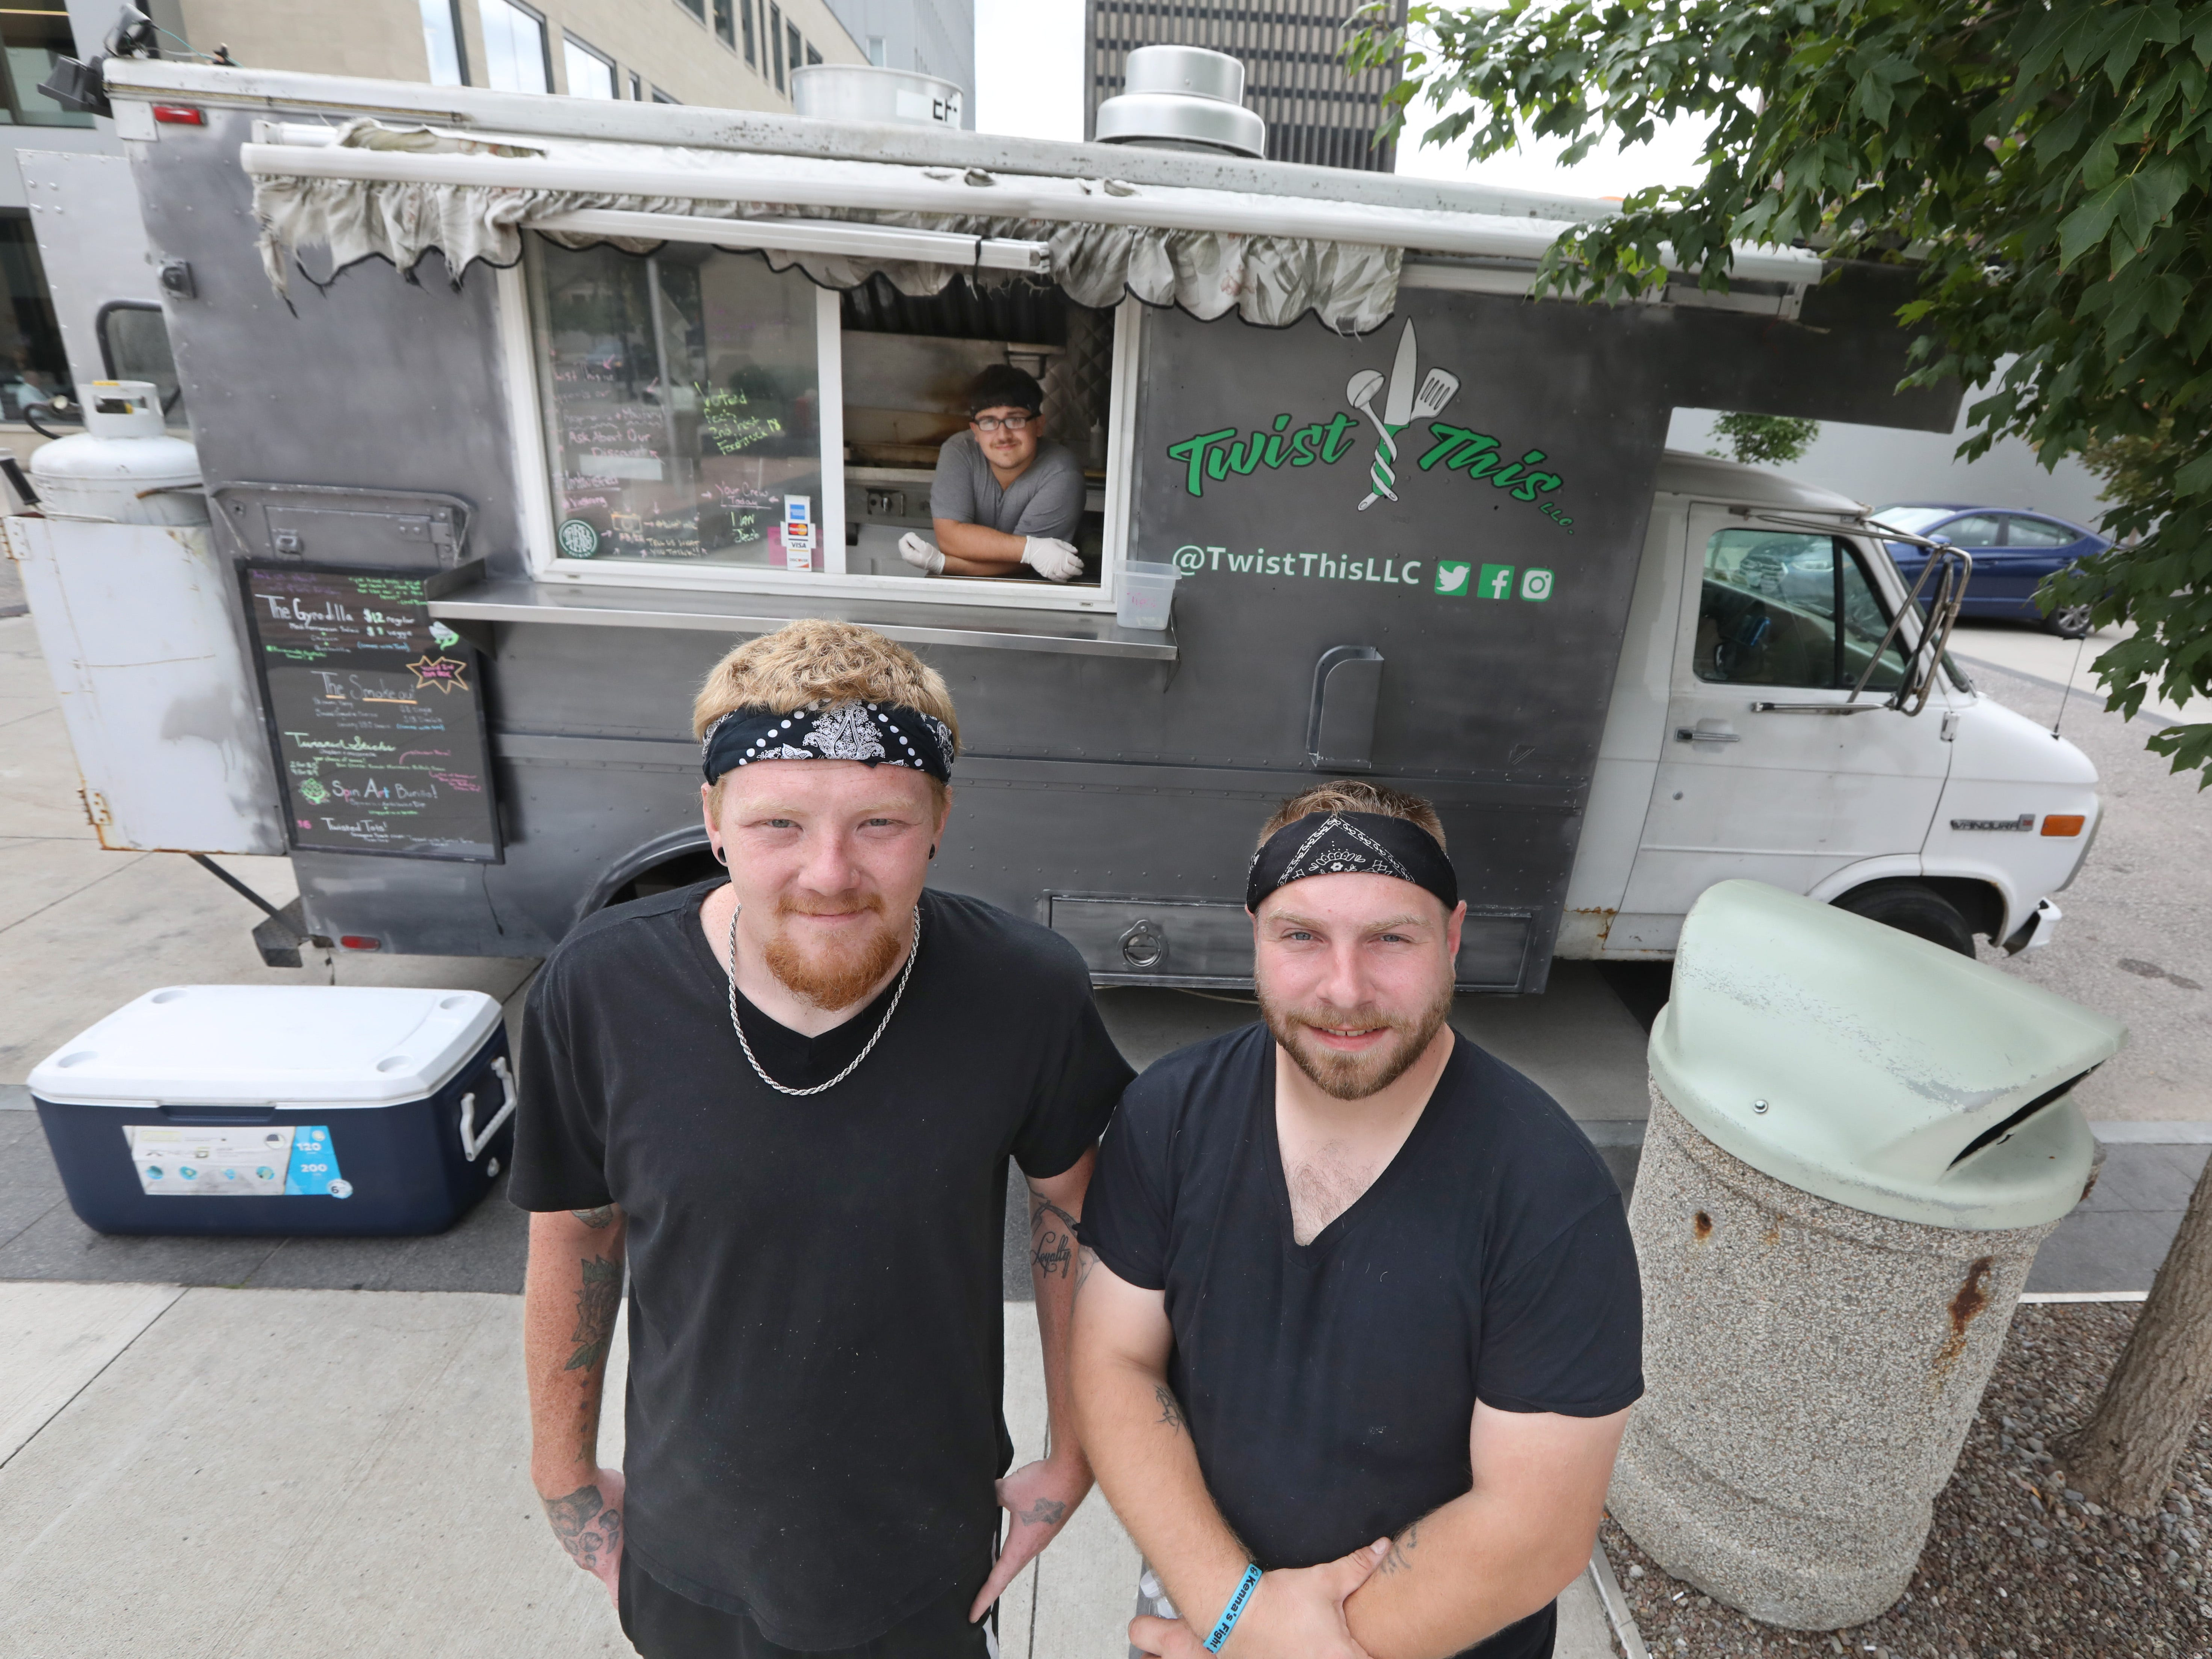 The faces behind the new Twist This food truck  are co-owners Kota Briley, left, and Daniel Brentson, right, and employee Jacob Balzano, back center, in Rochester Wednesday, Sept. 19, 2018.